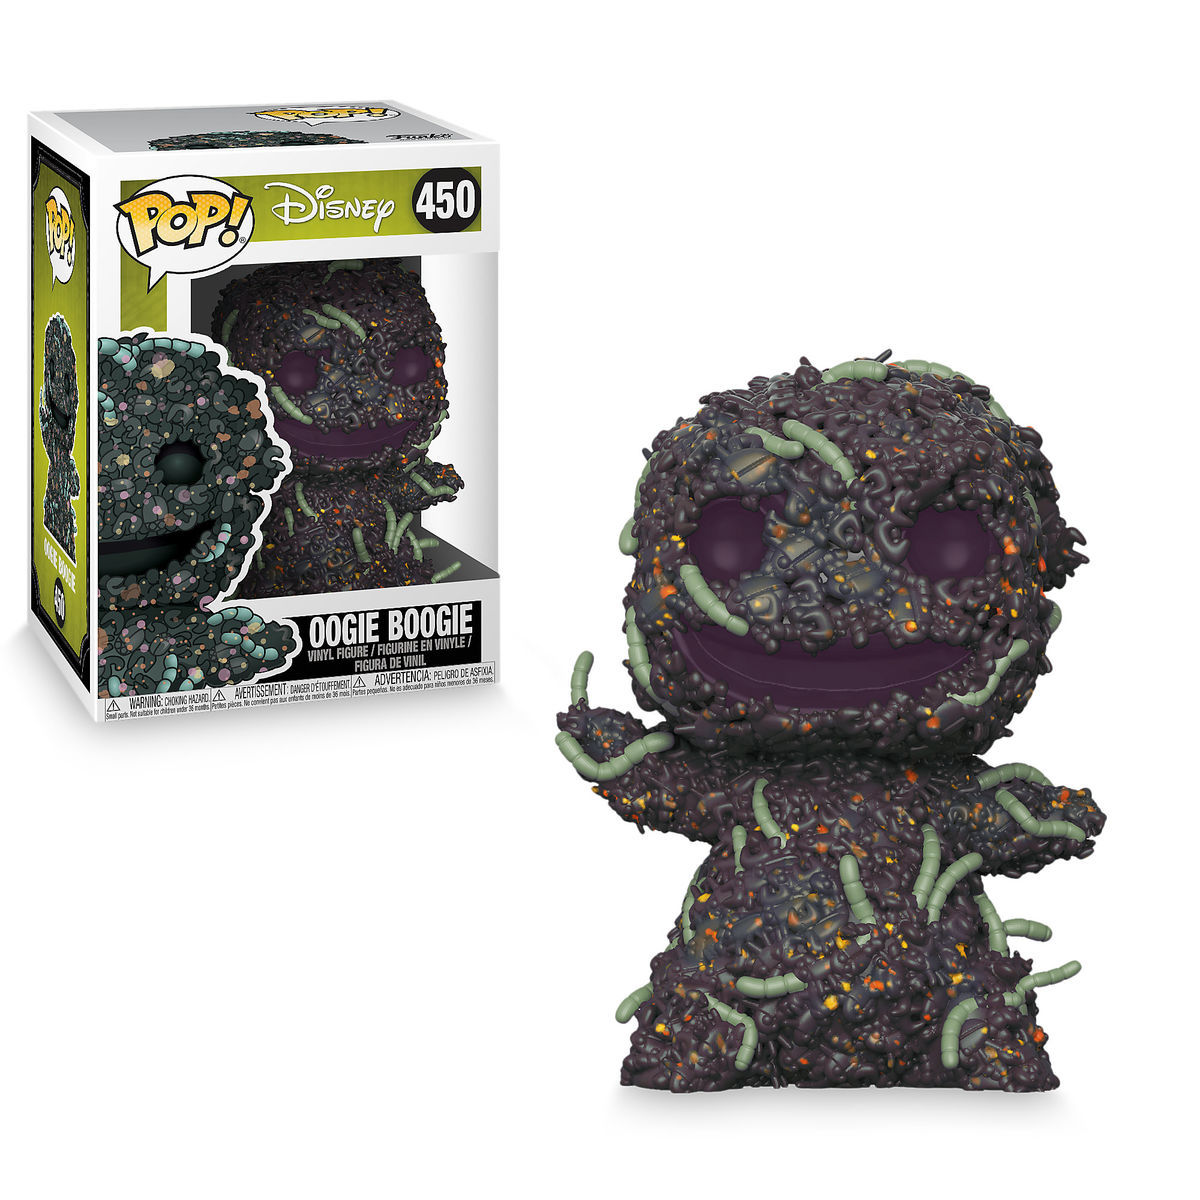 Oogie Boogie Pop! Vinyl Figure by Funko - The Nightmare Before ...